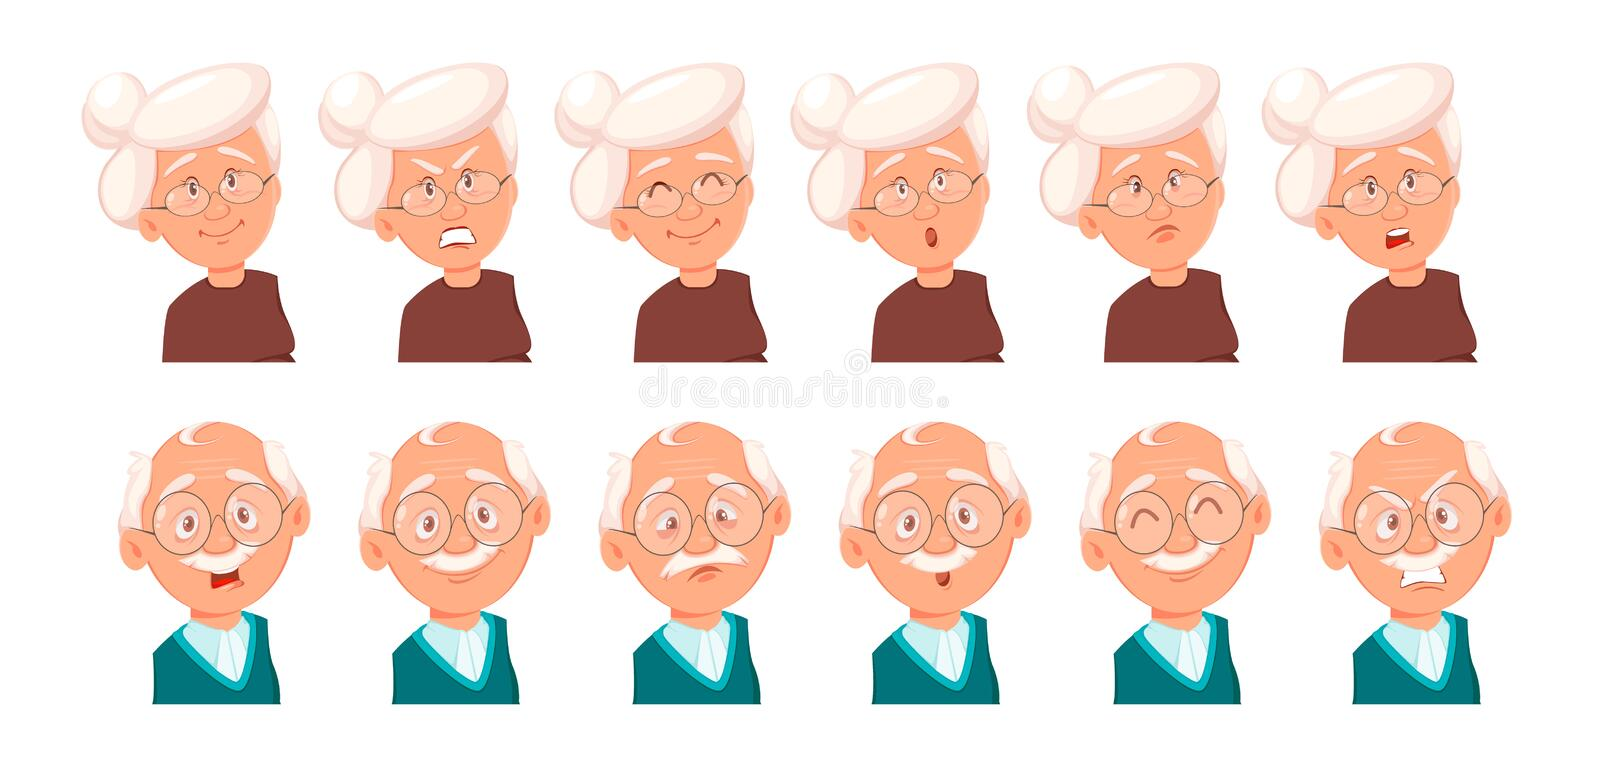 Expressions de visage de grand-père et de grand-mère illustration stock